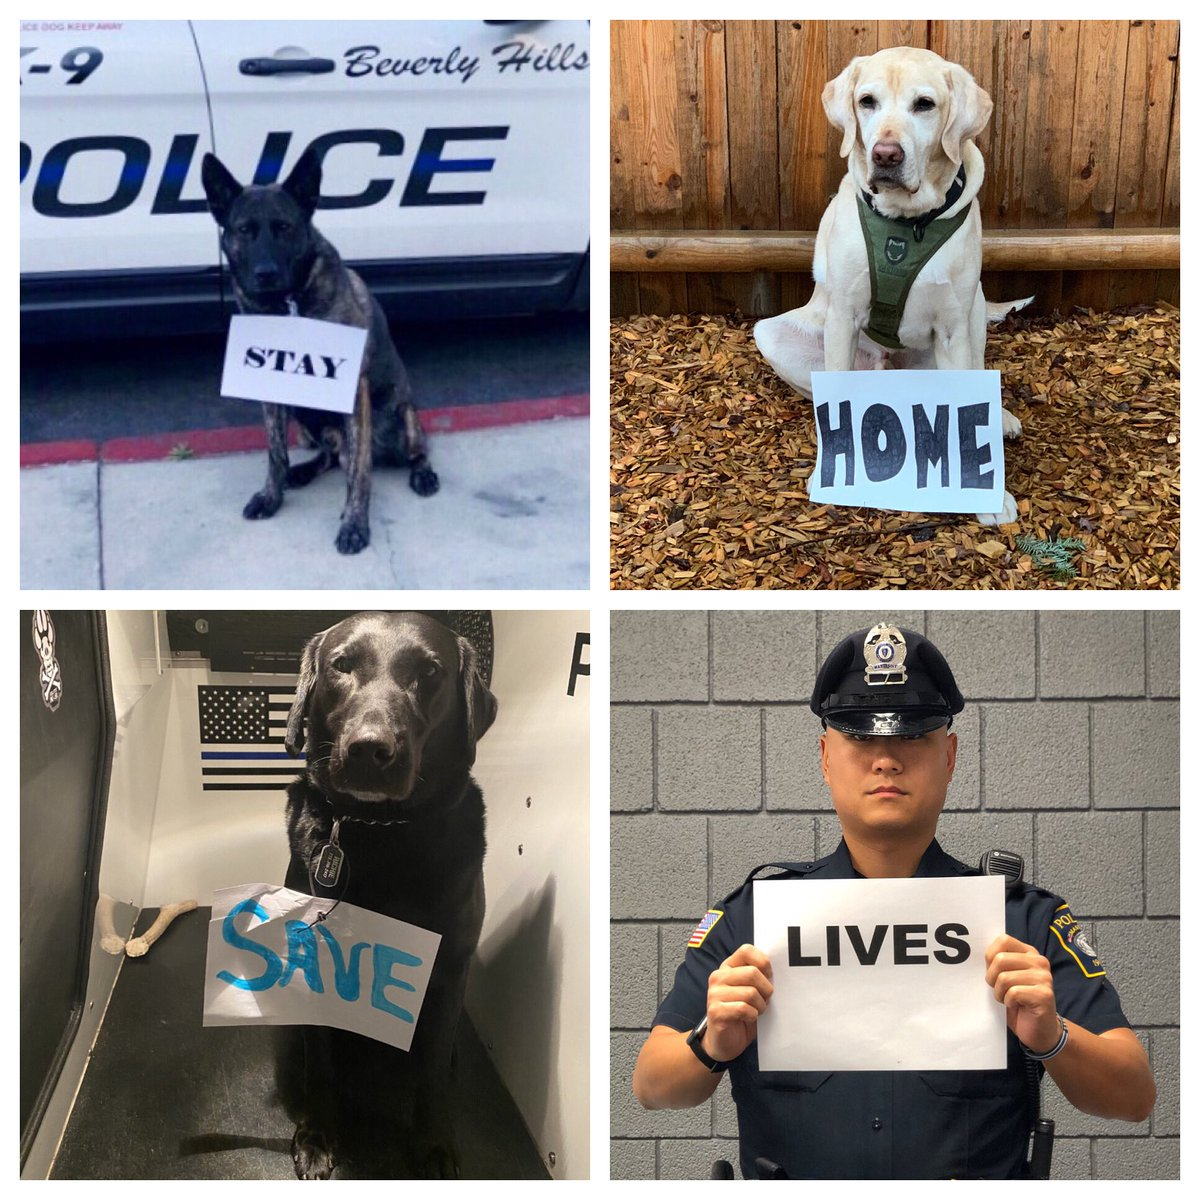 To help spread the necessary awareness of staying home right now, I have enlisted the help of some friends!  #ThinBlueLine #PoliceOfficer  #StayHomepic.twitter.com/8it79XXfwC